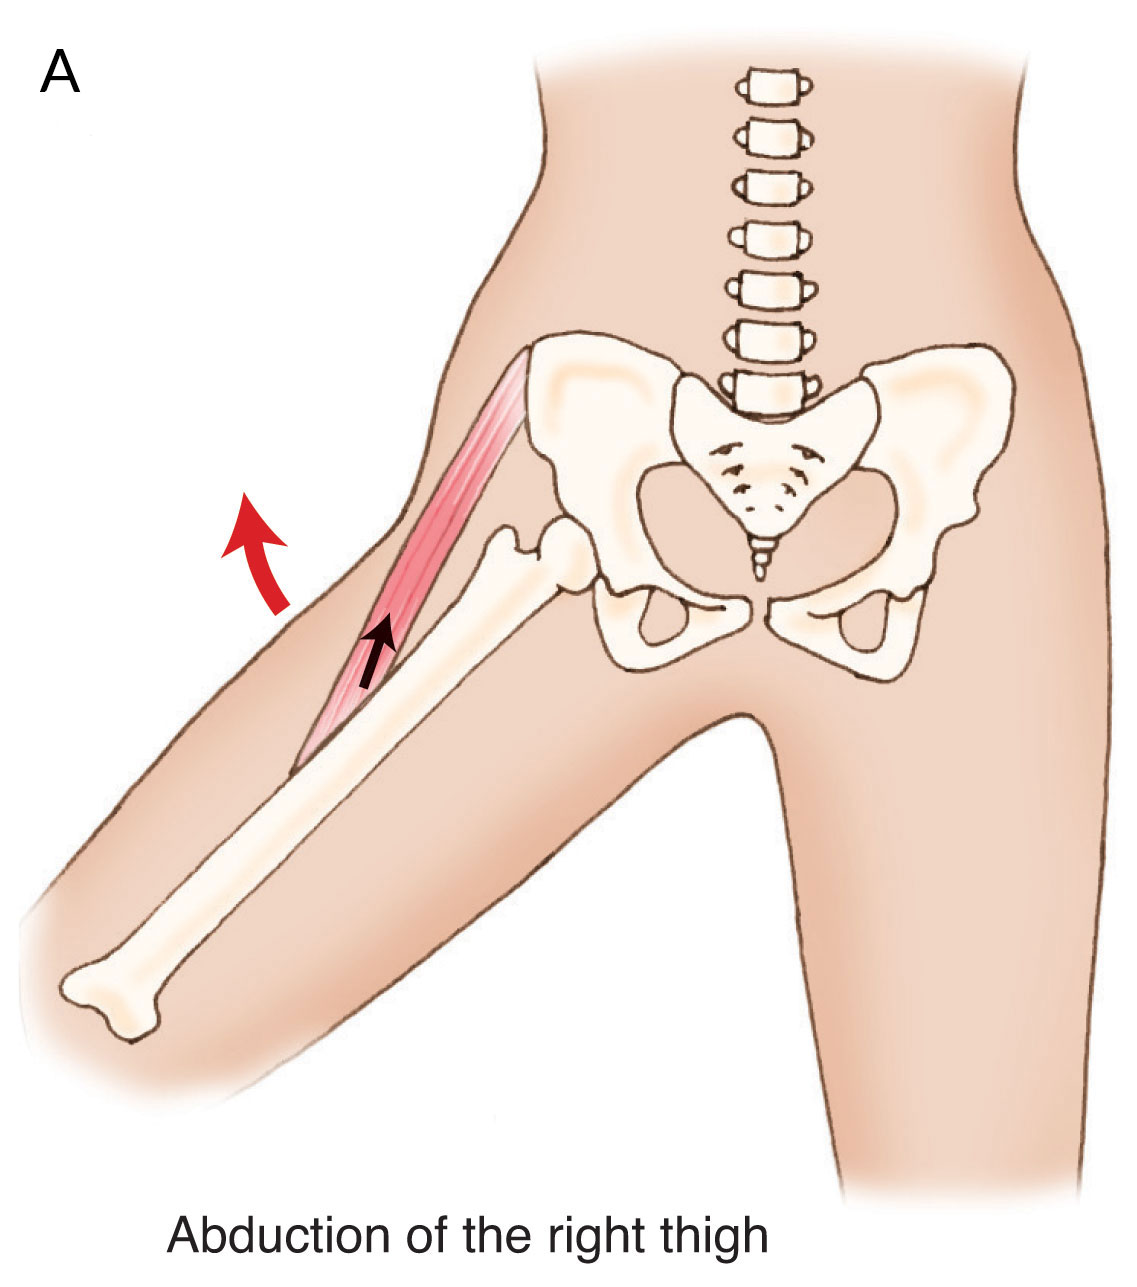 Abduction of the thigh at the hip joint